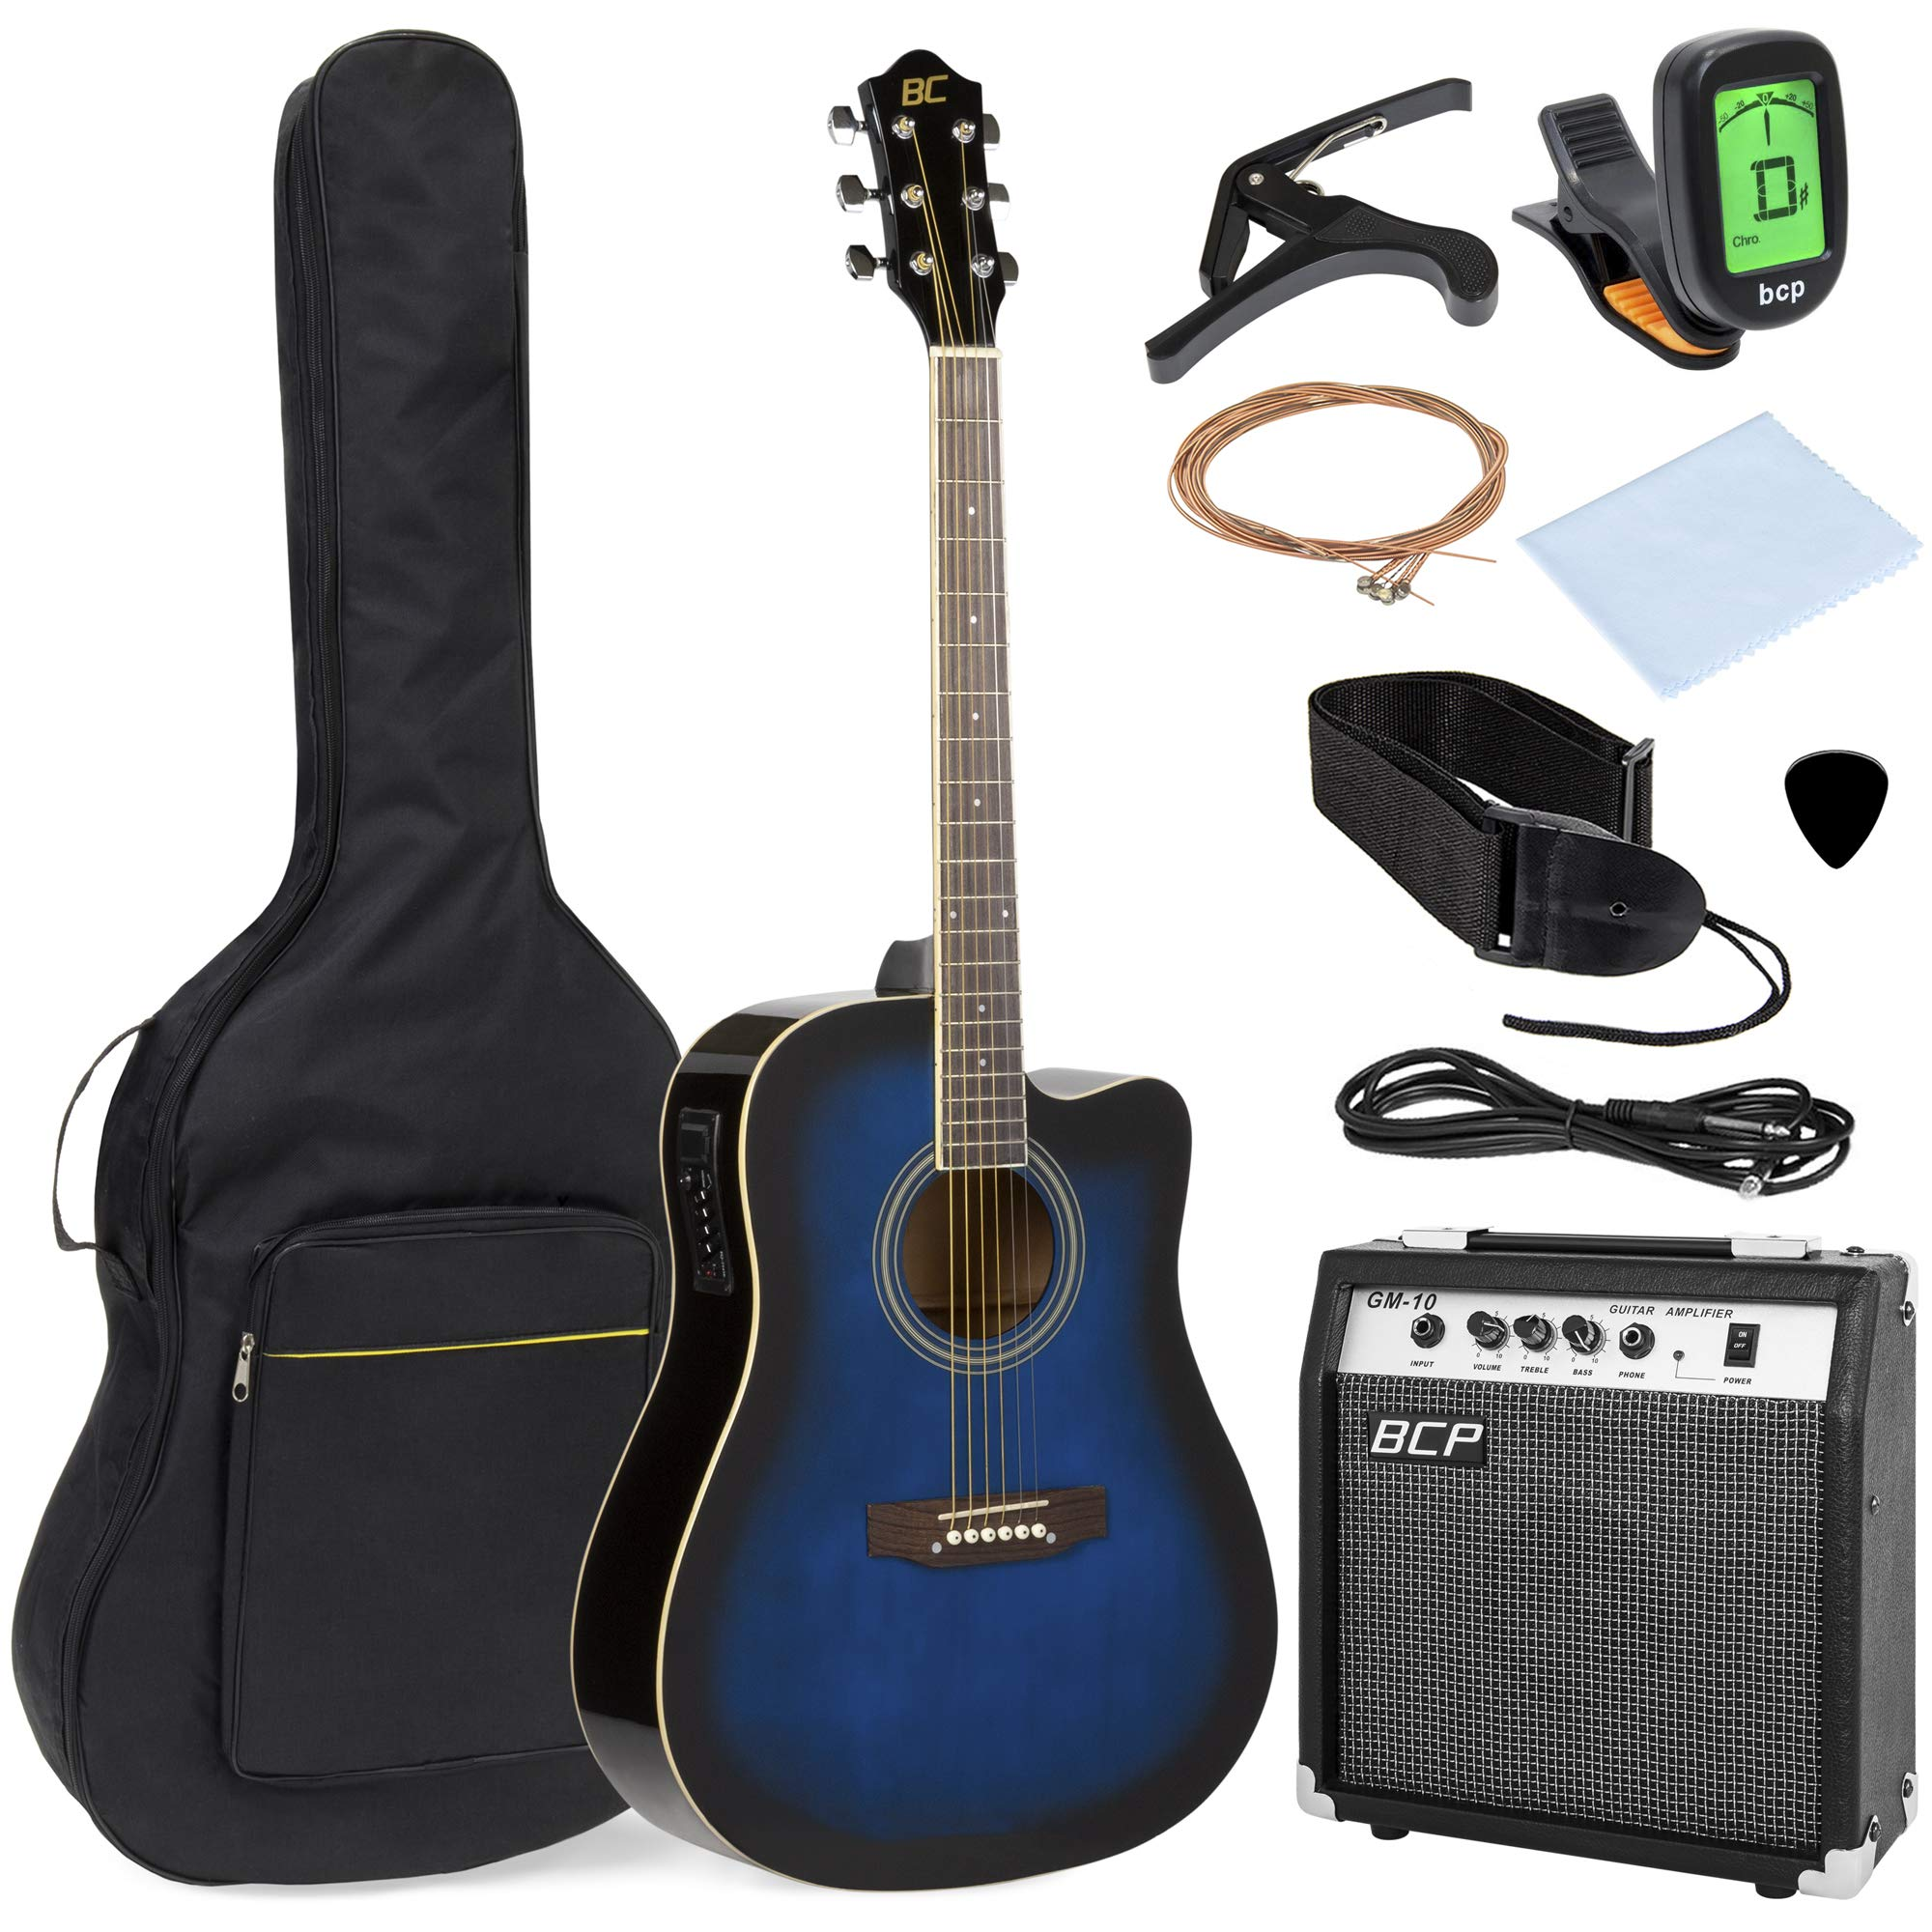 Best Choice Products 41in Full Size Acoustic Electric Cutaway Guitar Set with 10-Watt Amplifier, Capo, E-Tuner, Gig Bag, Strap, Picks (Blue) by Best Choice Products (Image #1)